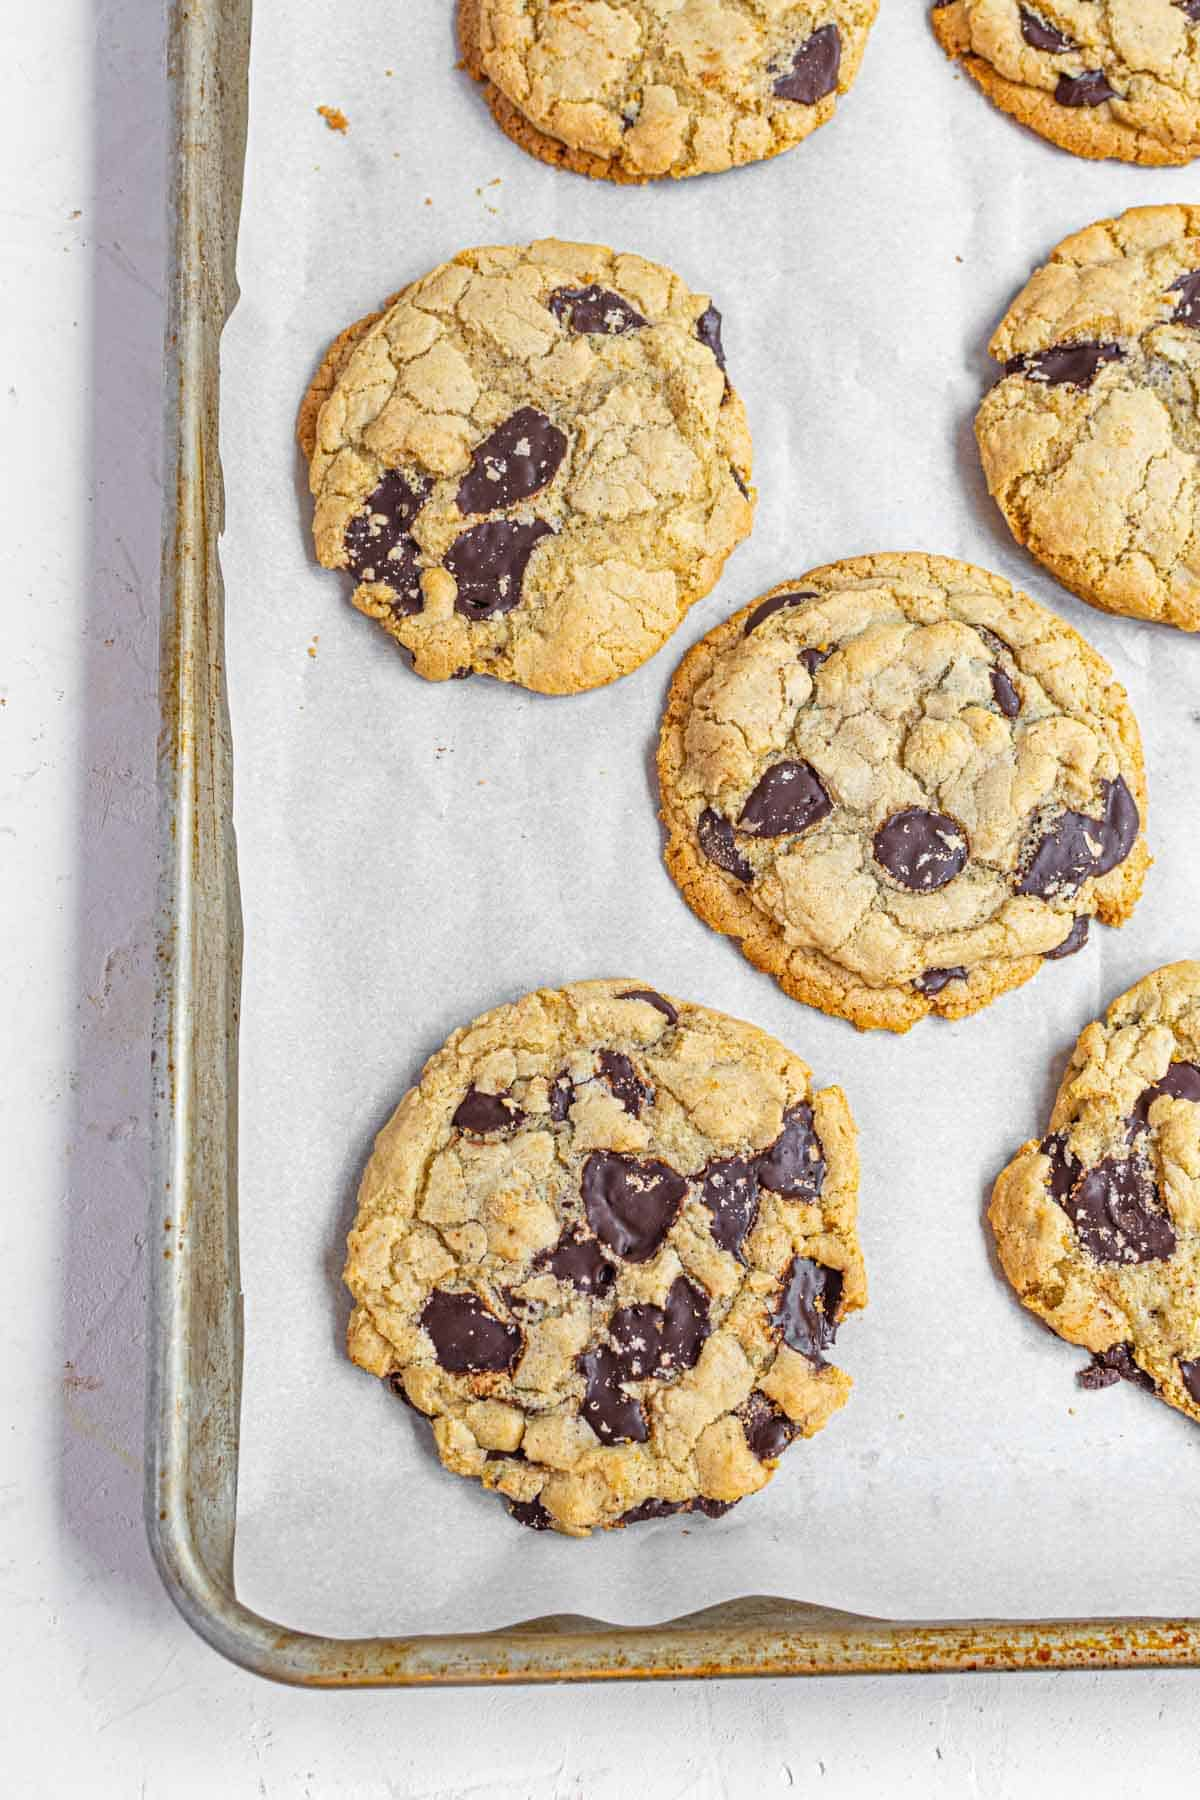 Chocolate Chip Cookies Arranged on a Pan Lined with Parchment Paper